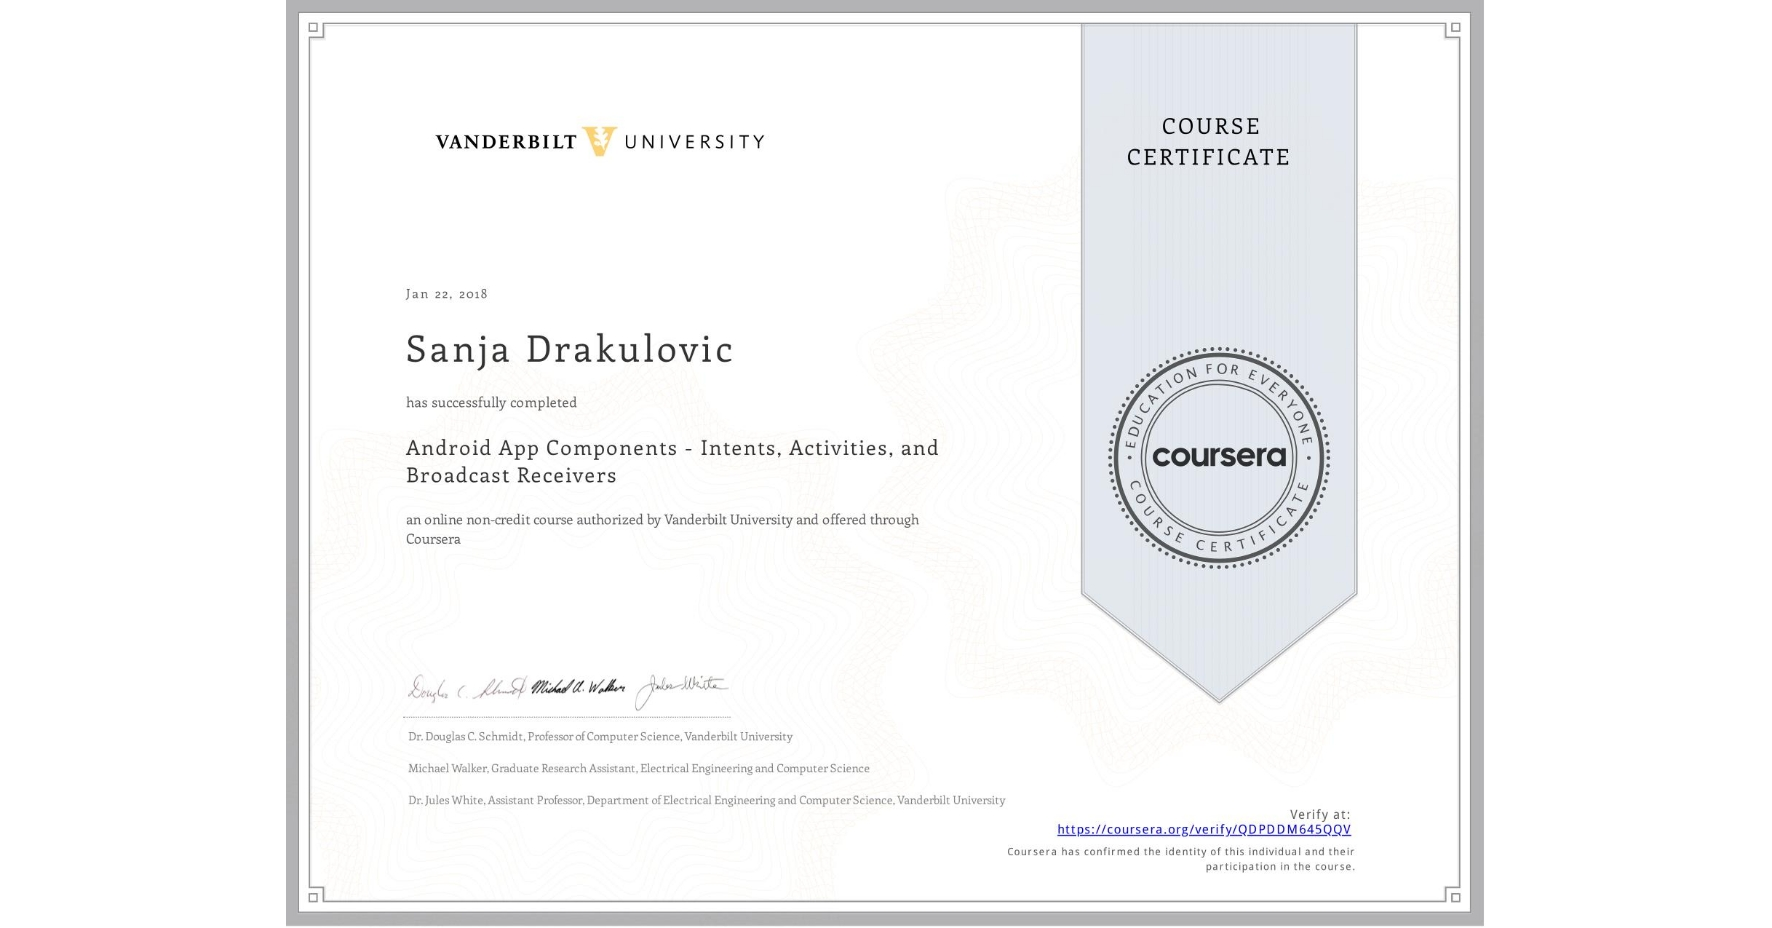 View certificate for Sanja Drakulovic, Android App Components - Intents, Activities, and Broadcast Receivers, an online non-credit course authorized by Vanderbilt University and offered through Coursera